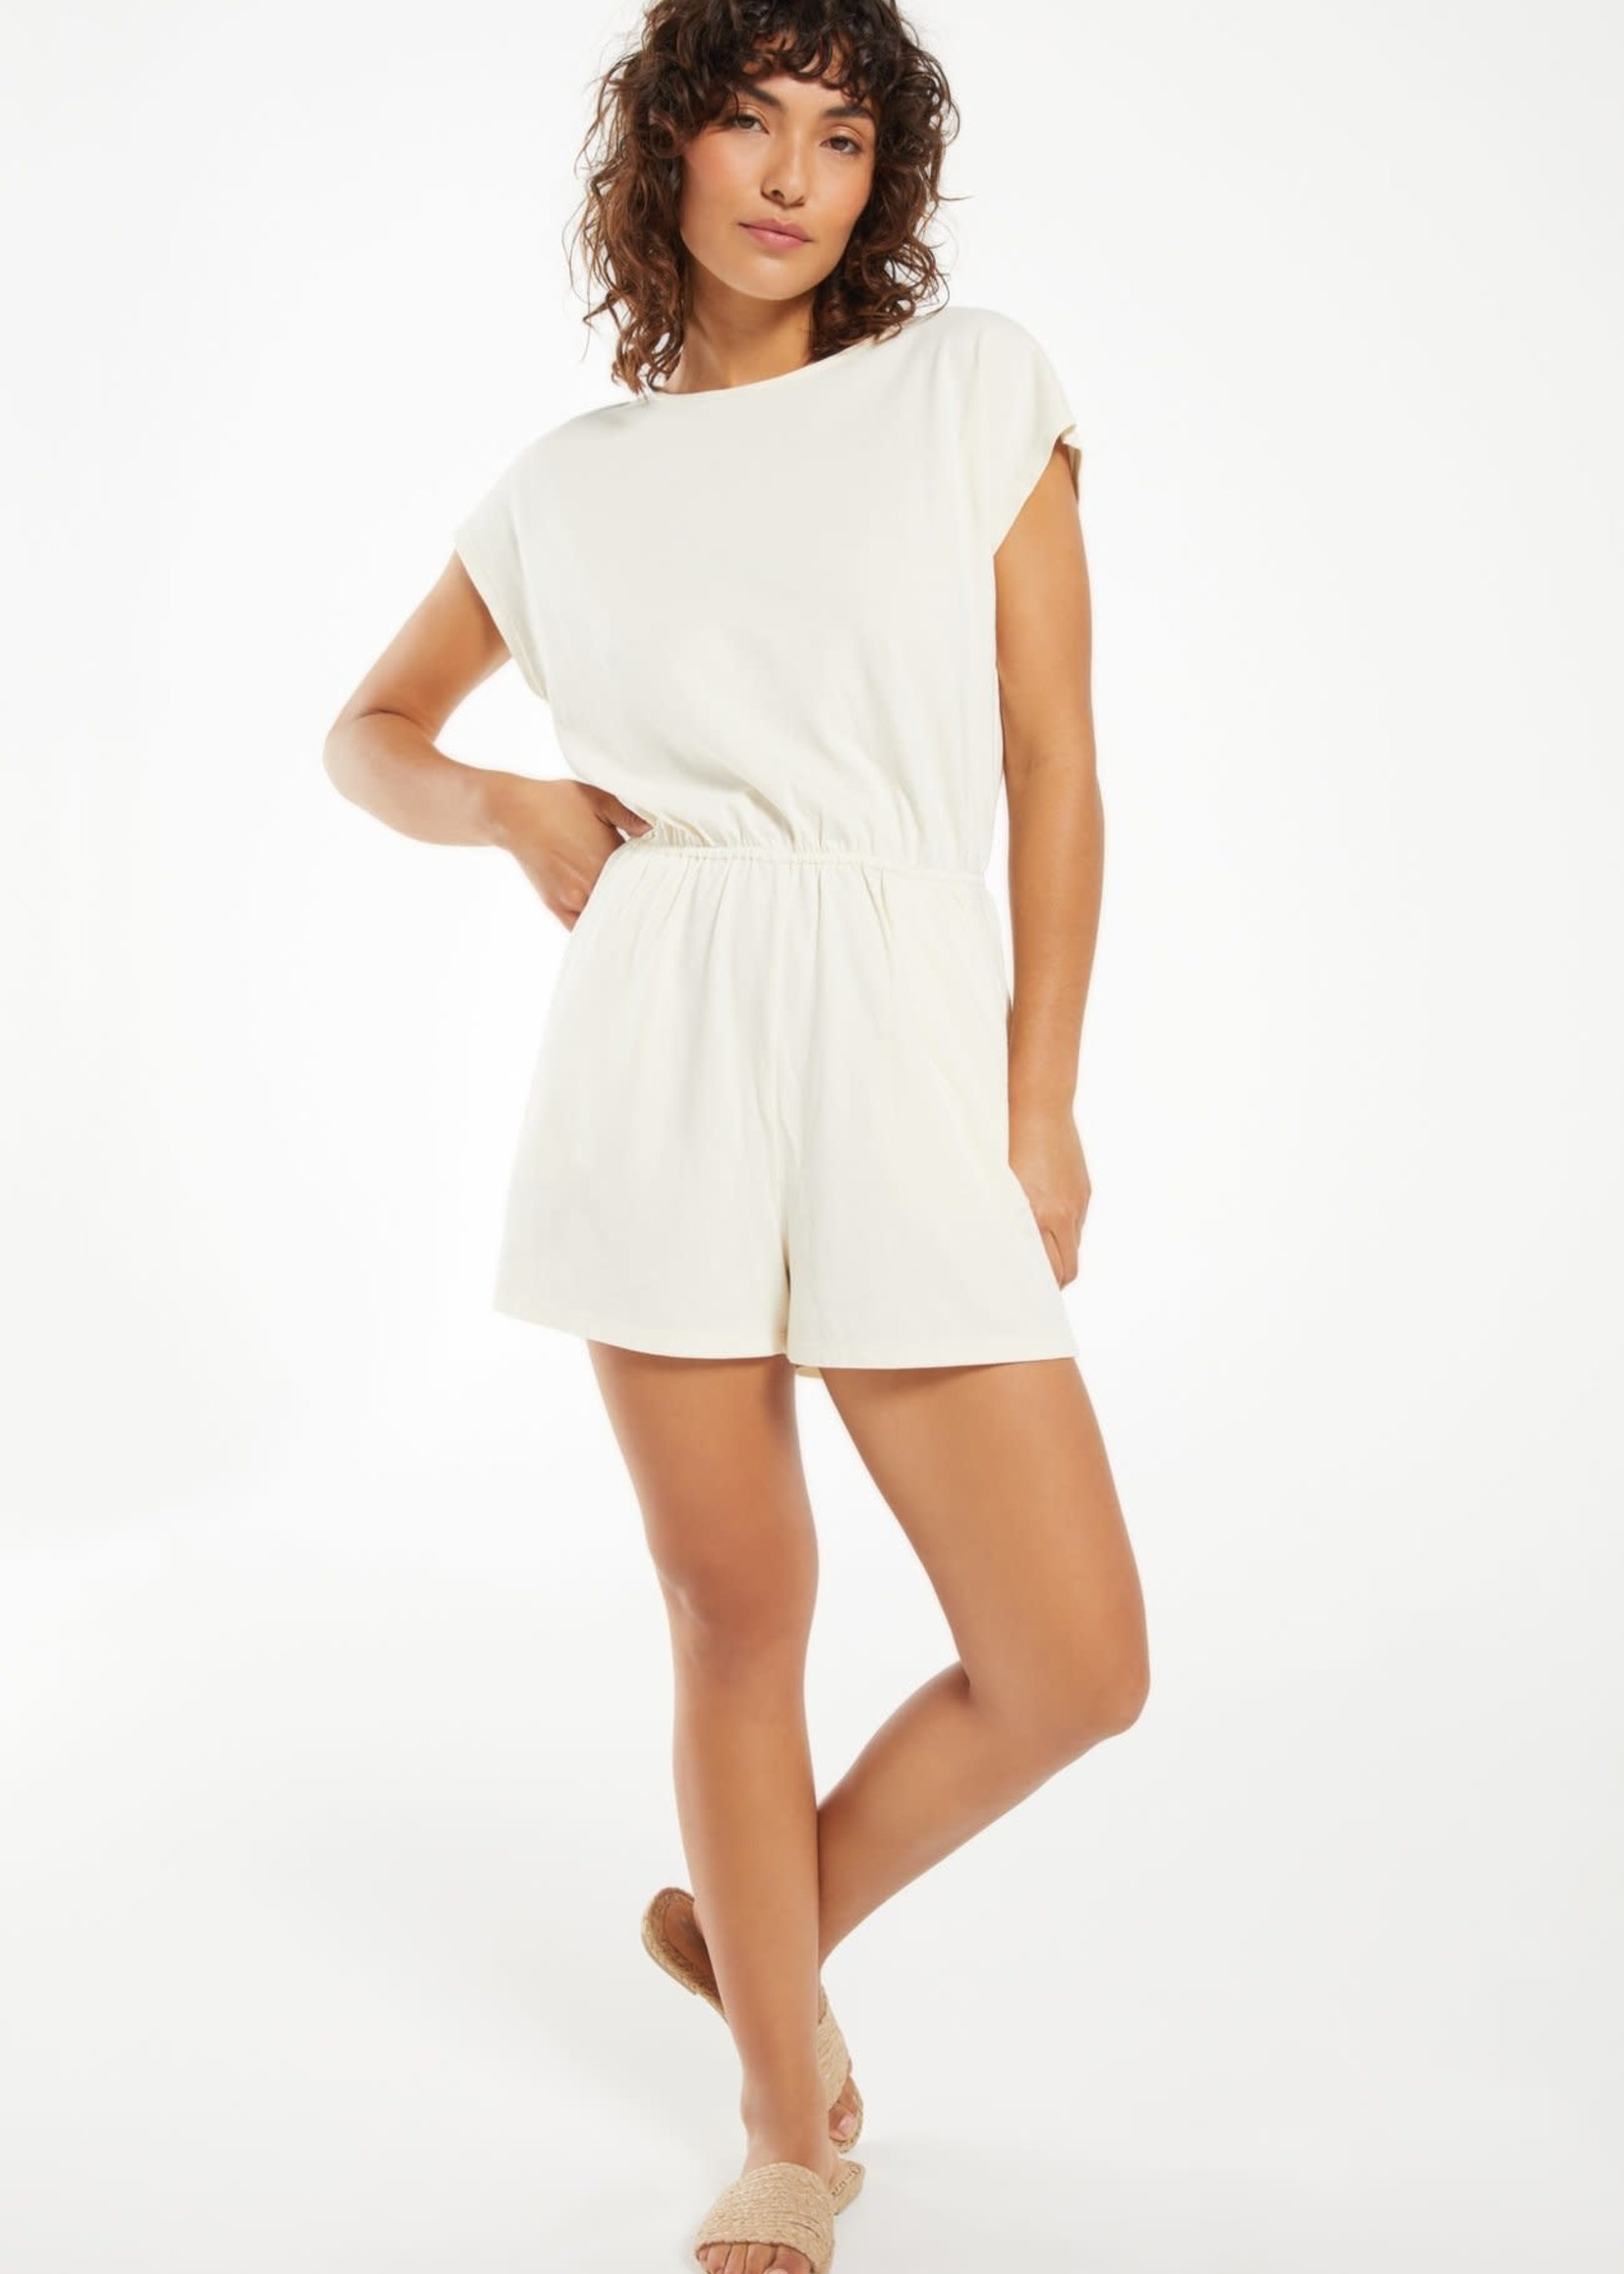 Z Supply Sky Jersey Romper